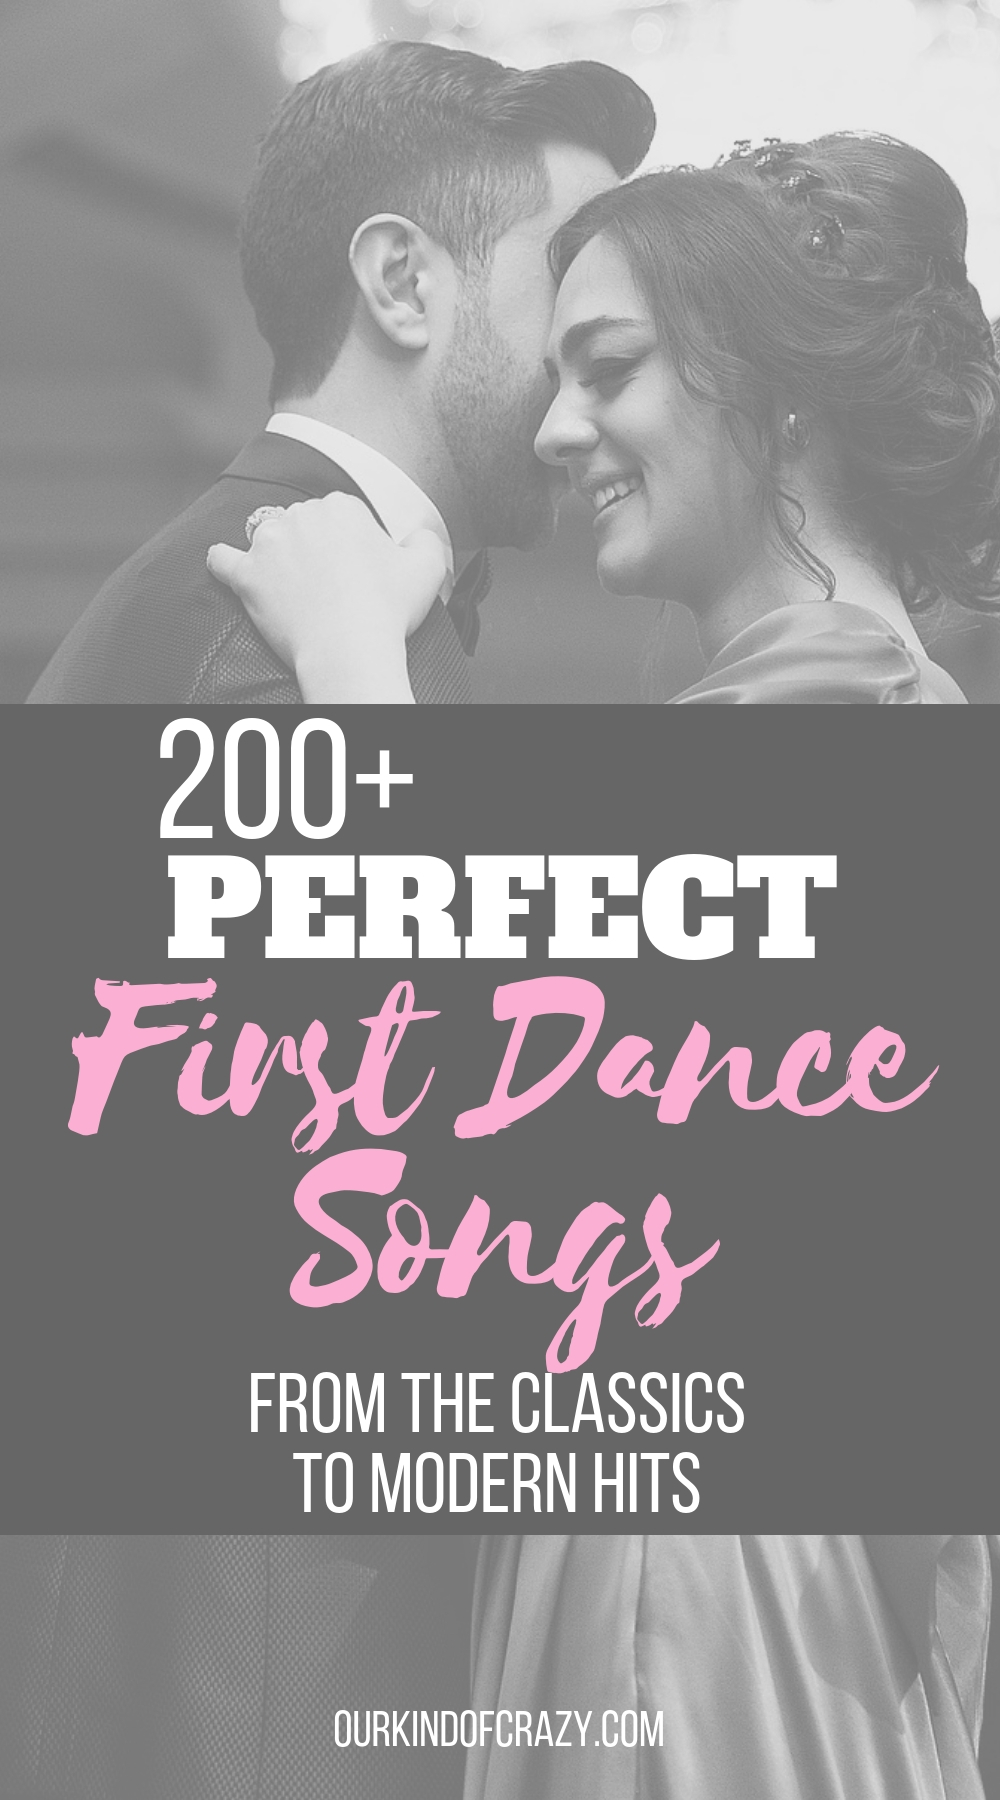 Over 200 Top First Dance Song Ideas...from the Classics, to modern hits